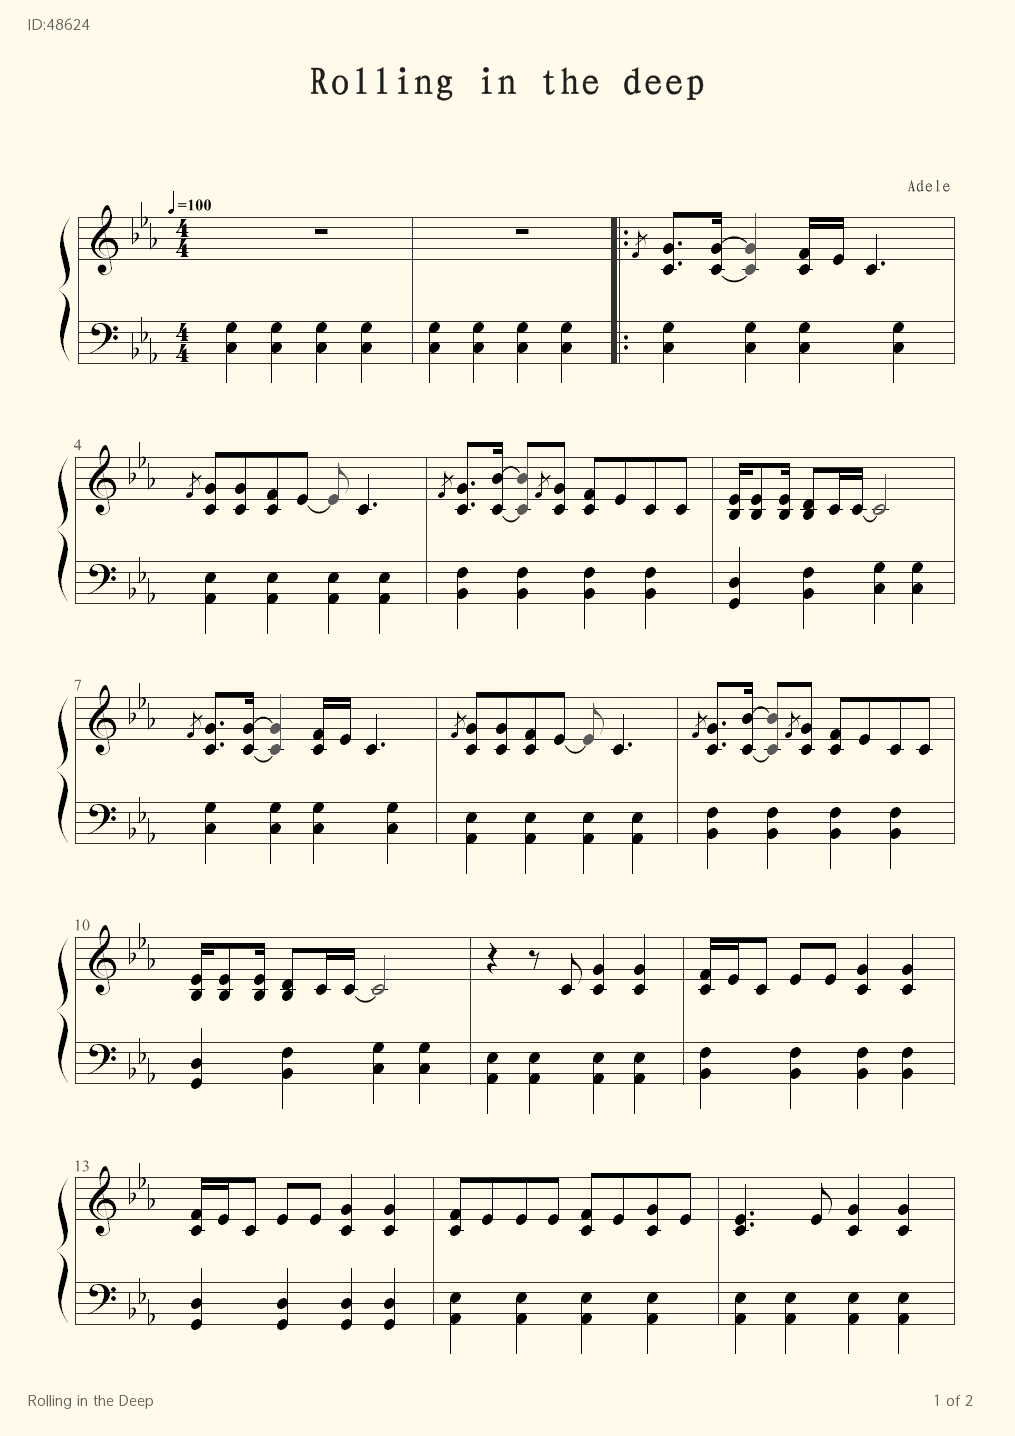 Rolling in the Deep - Adele  - first page